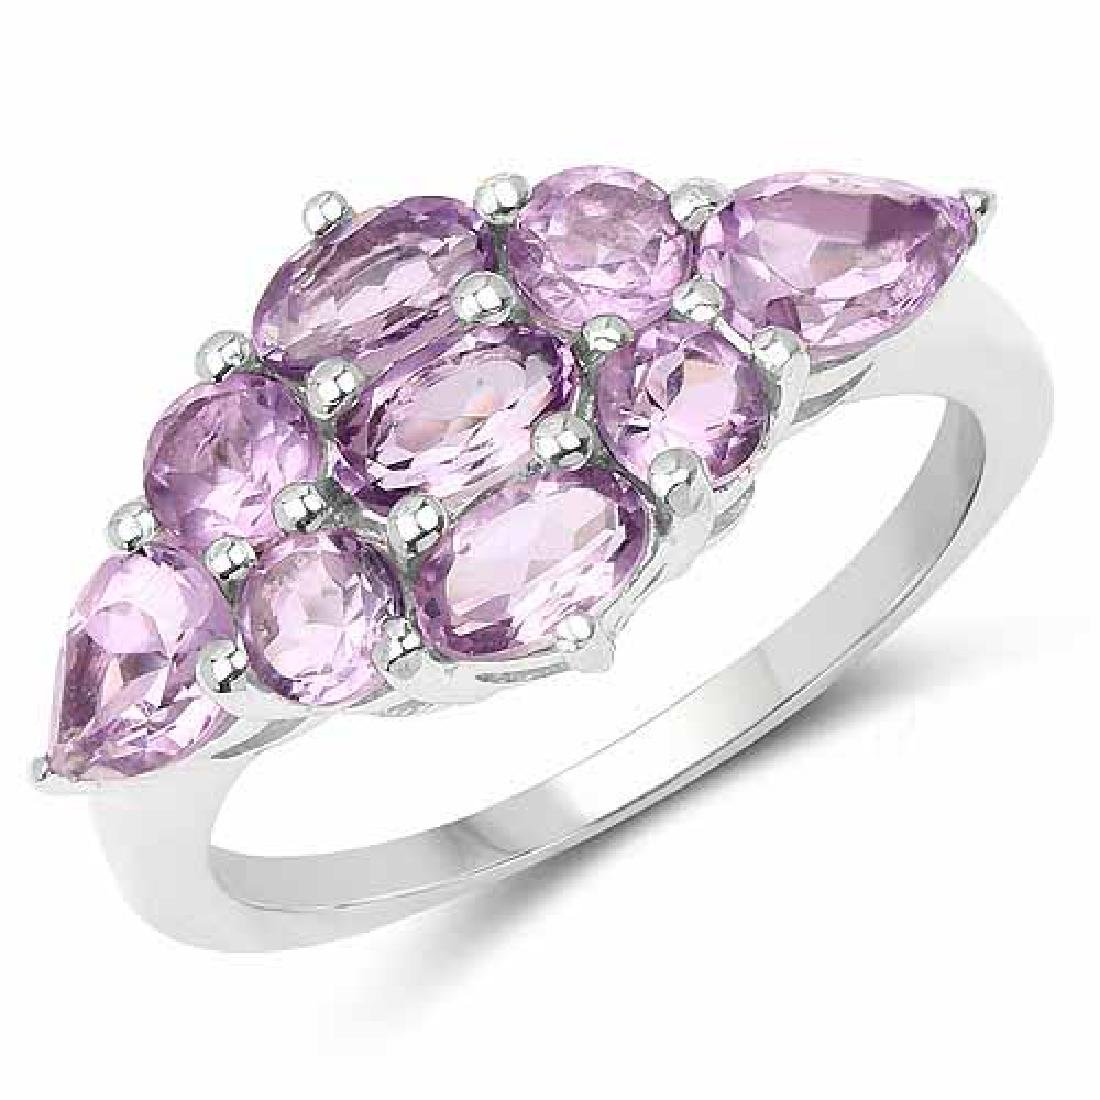 2.13 Carat Genuine Amethyst .925 Sterling Silver Ring